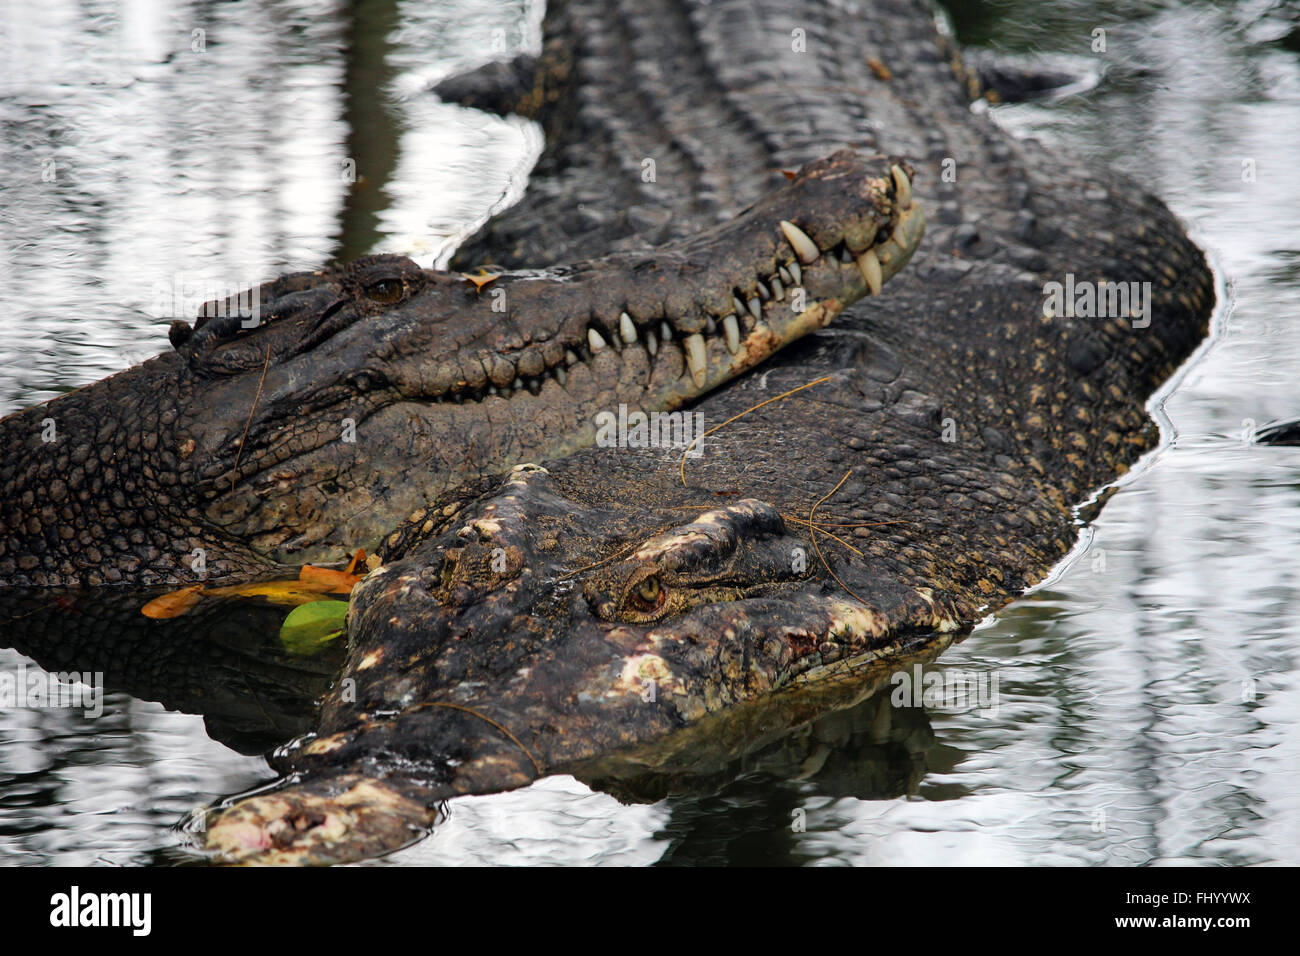 MIRI/MALAYSIA - 24 NOVEMBER 2015: Two crocodiles in the fresh water the region of Sarawak in Borneo Stock Photo